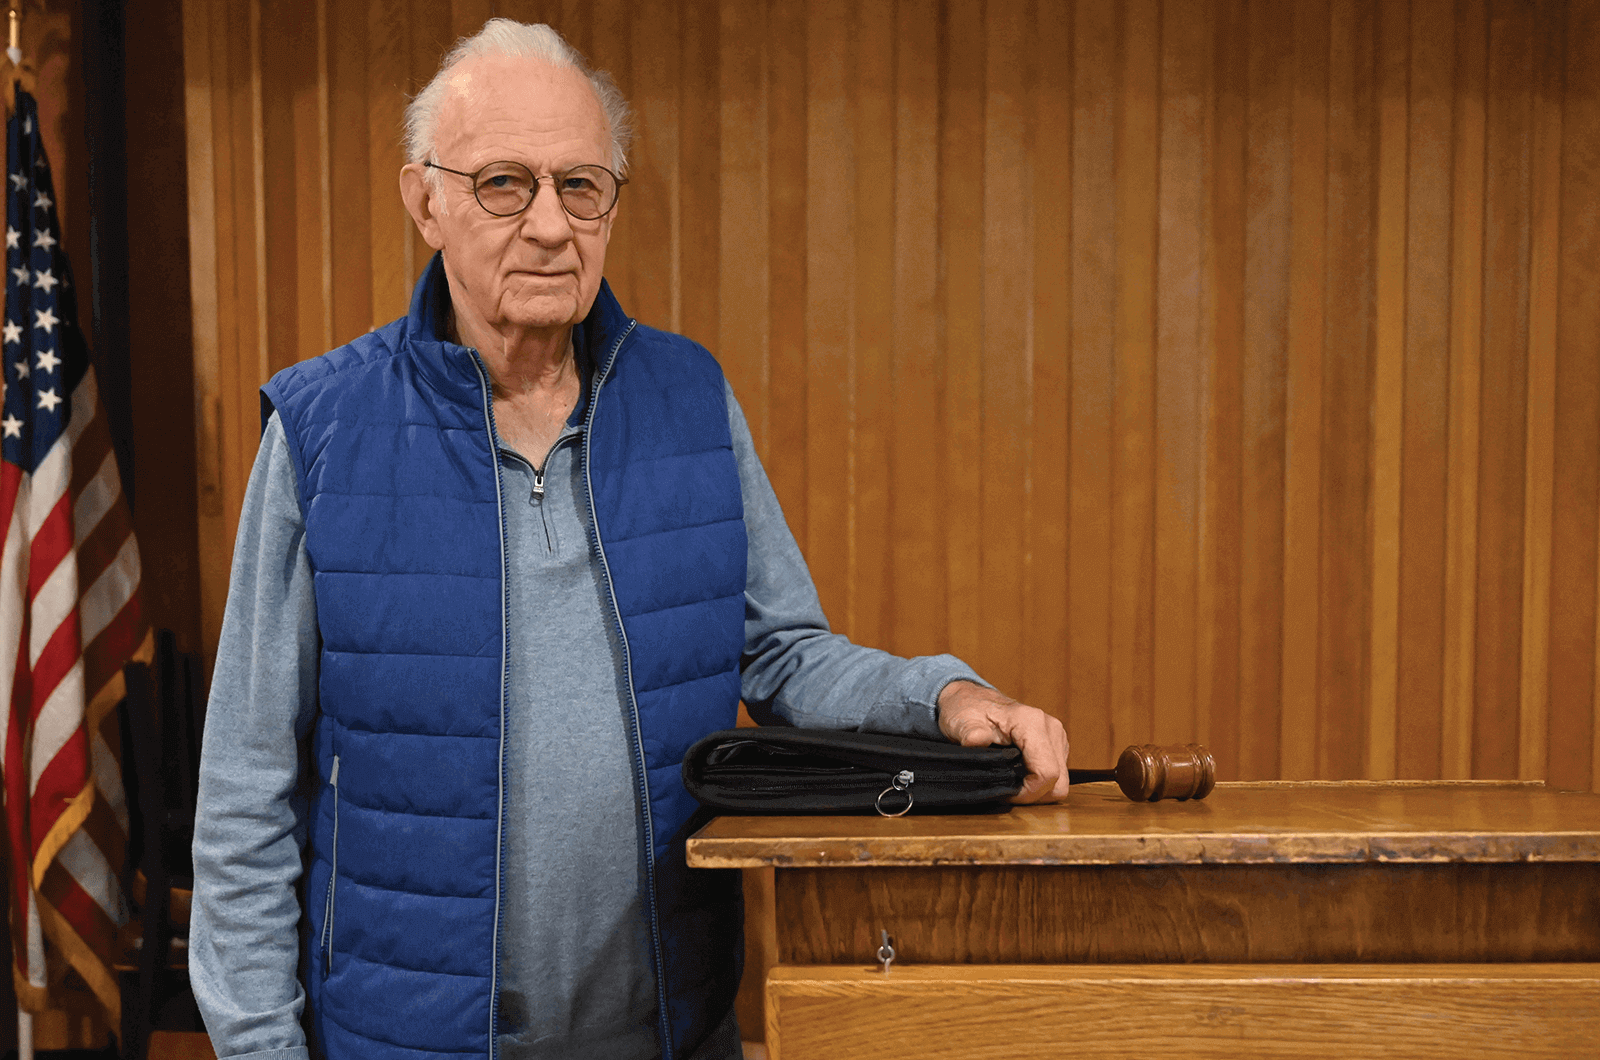 Man in blue vest standing at lectern with gavel